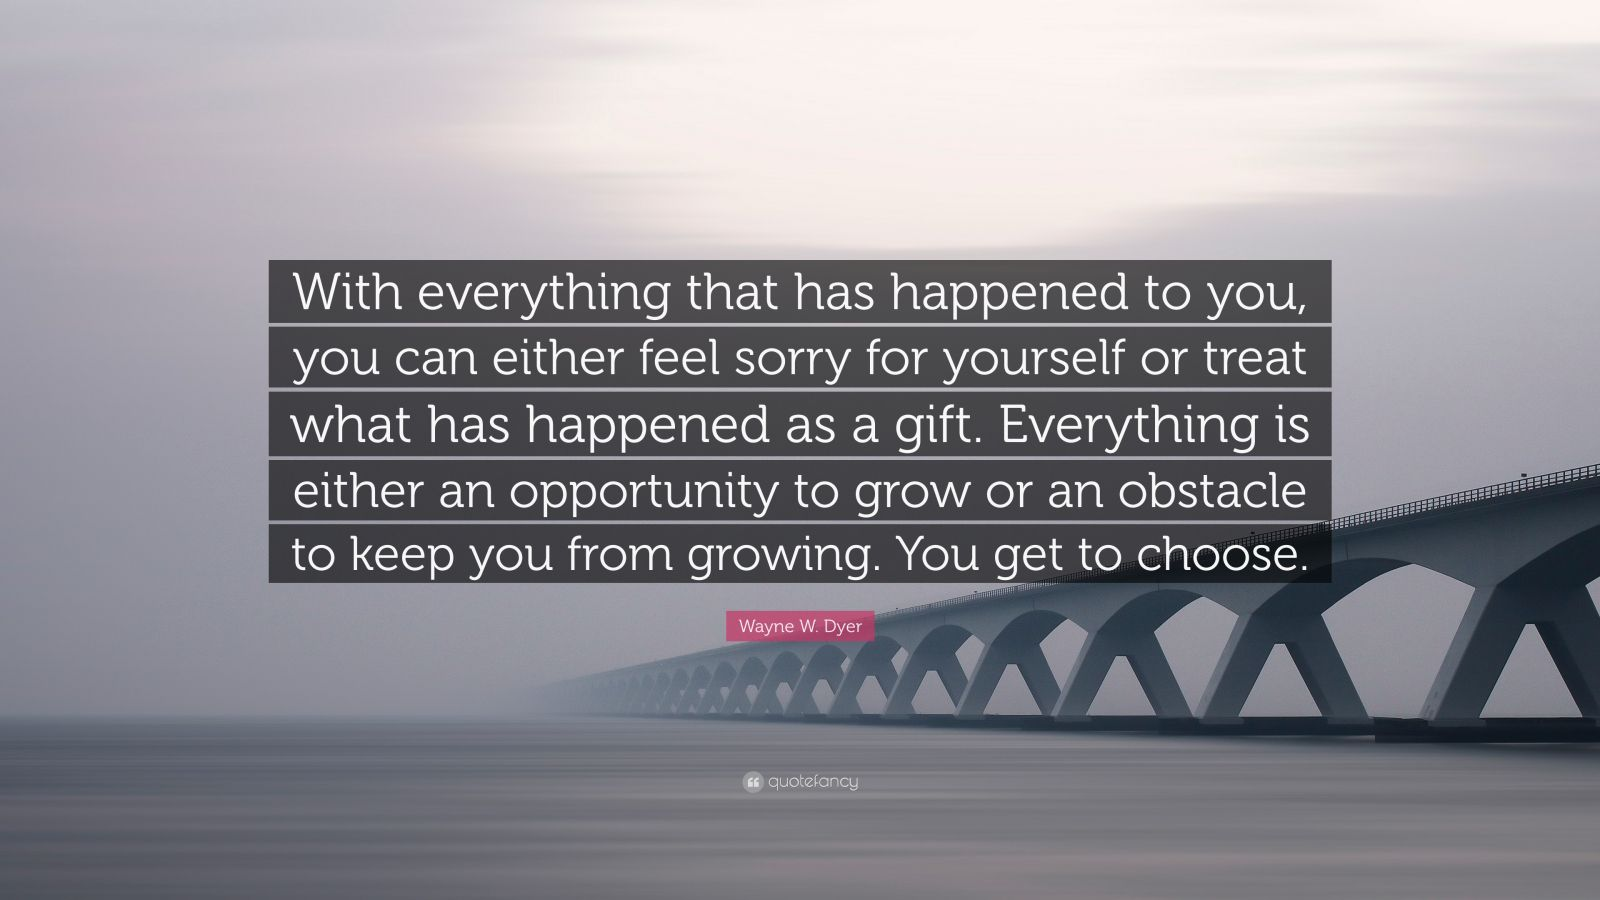 "Wayne W. Dyer Quote: ""With everything that has happened to you, you can either feel sorry for yourself or treat what has happened as a gift. Everything is either an opportunity to grow or an obstacle to keep you from growing. You get to choose."""